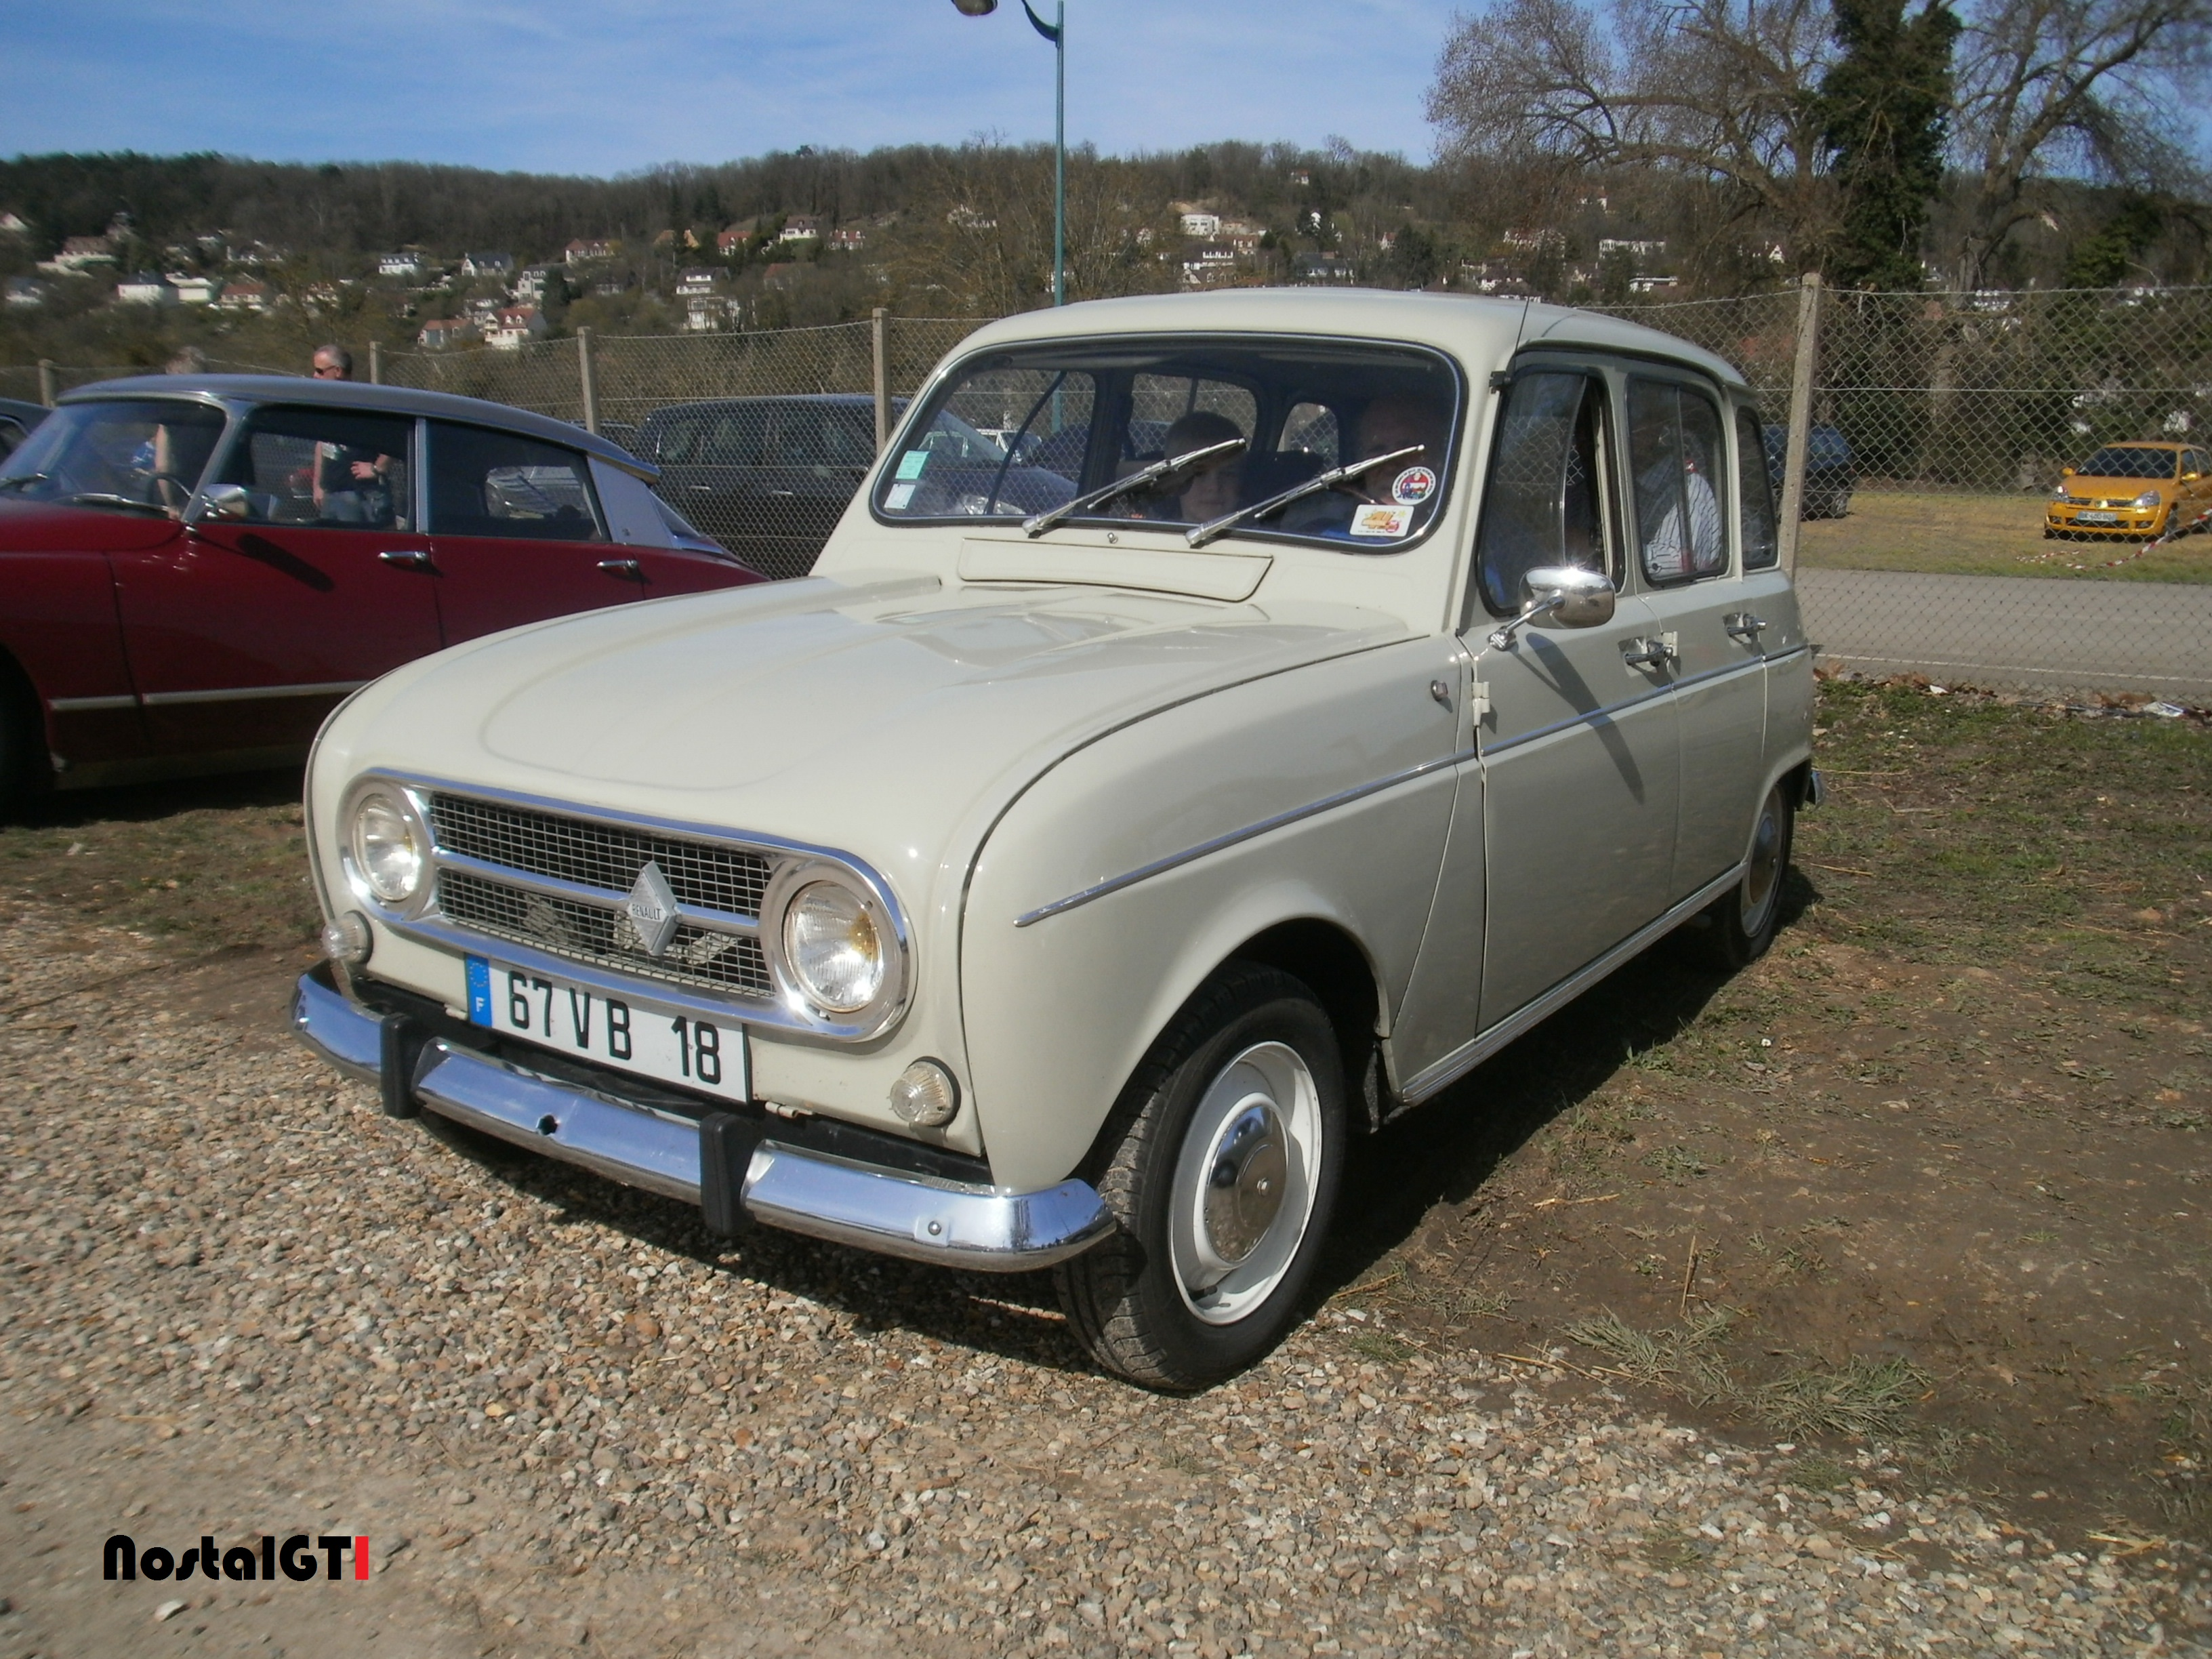 renault 4 1969 voiture anciennes nostalgti photos. Black Bedroom Furniture Sets. Home Design Ideas